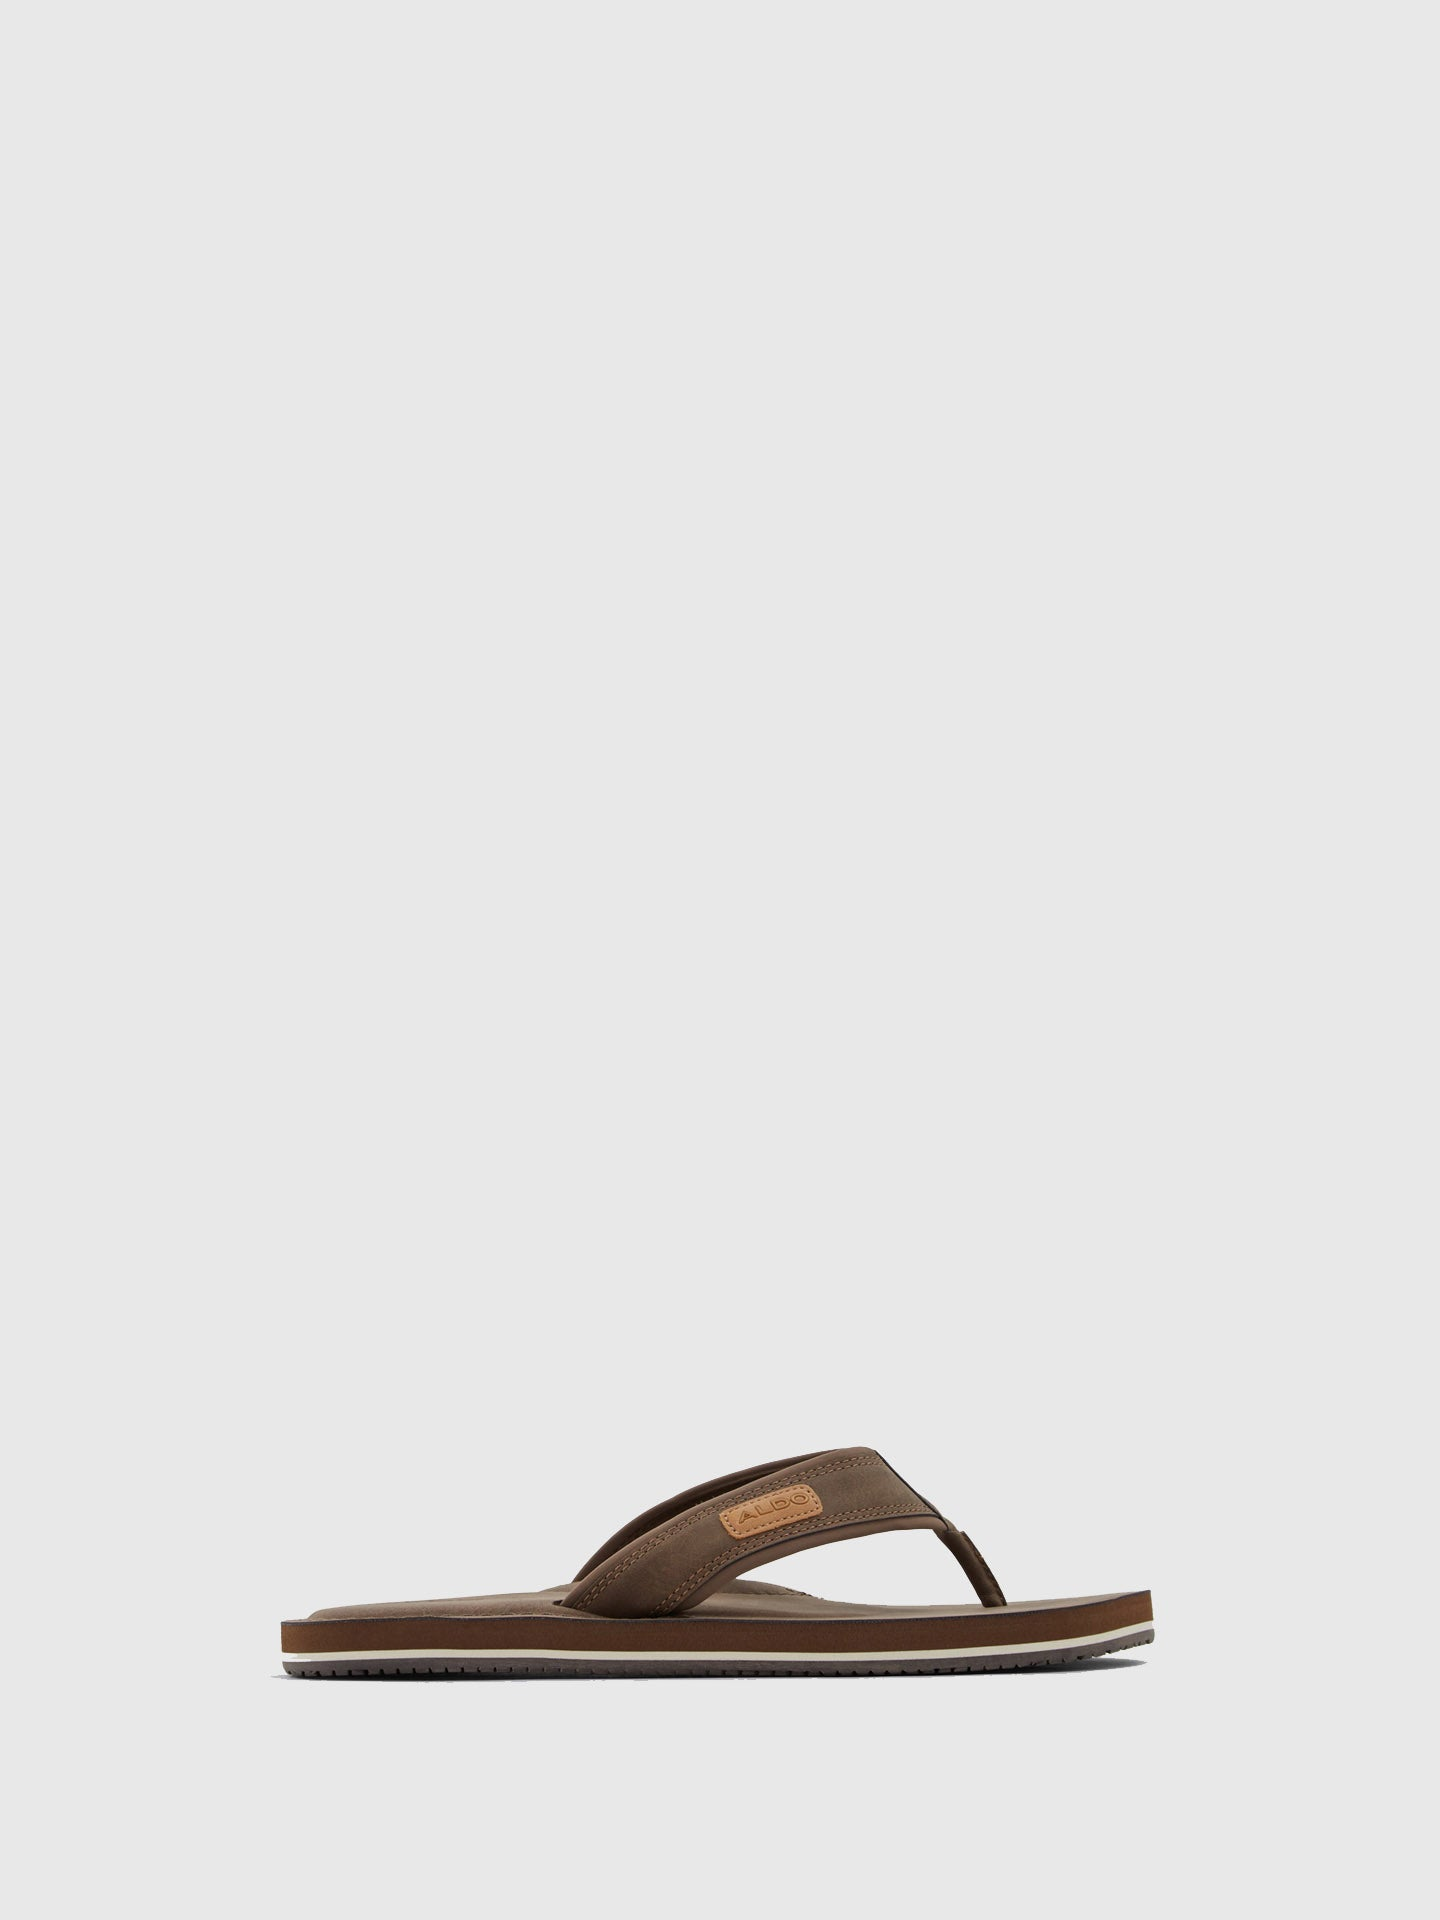 Aldo Brown Thong Sandals